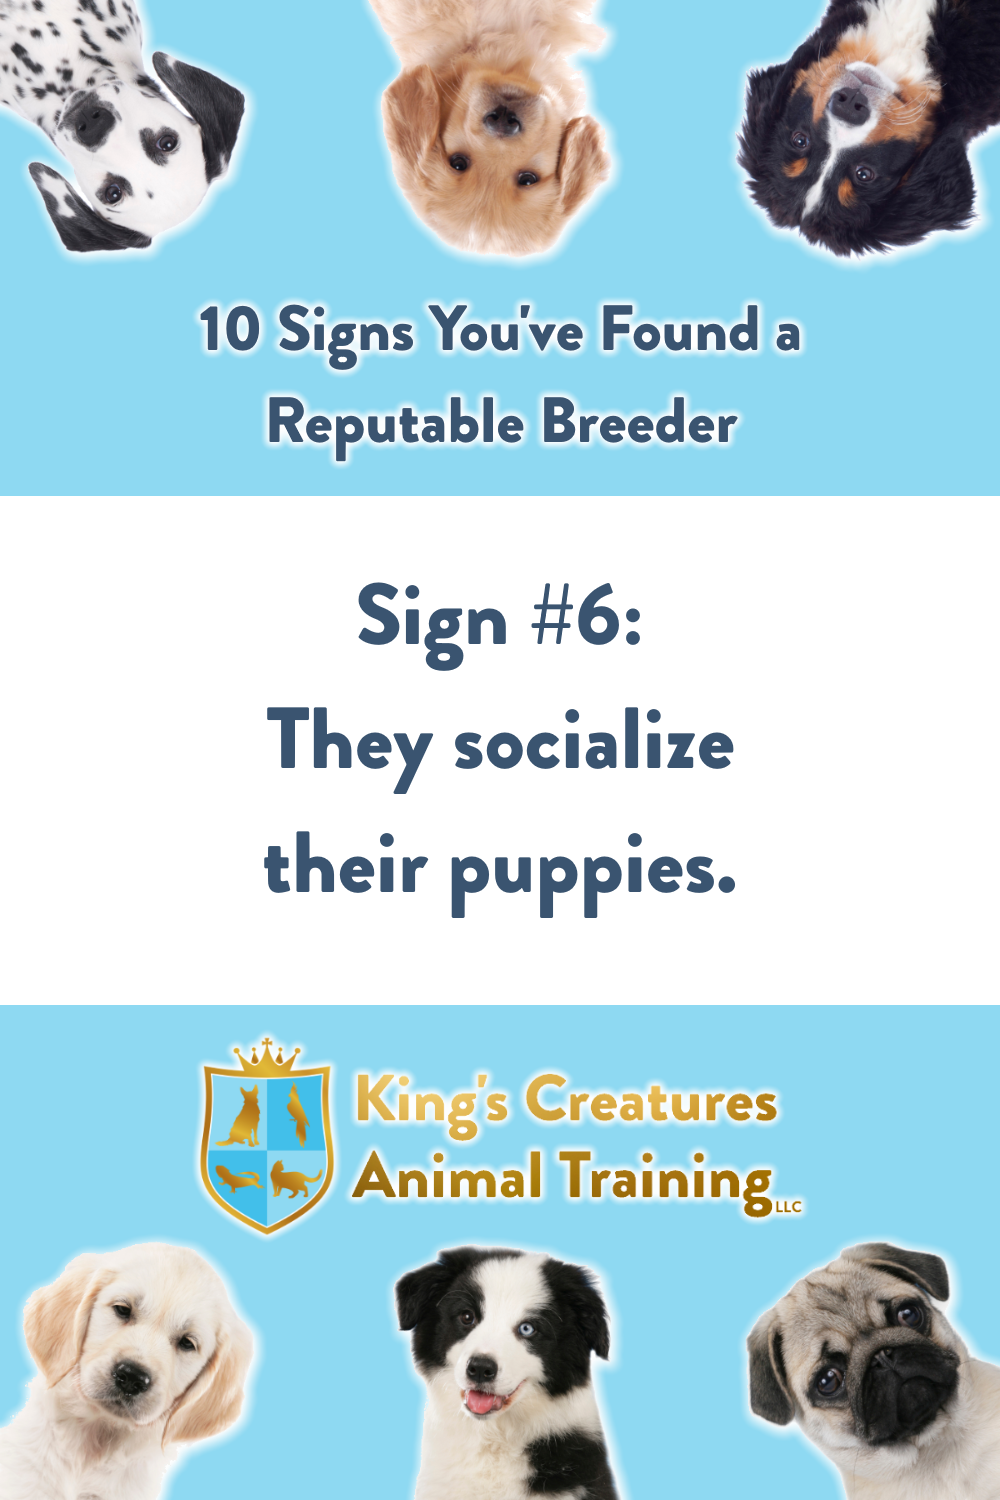 Dog Training Cedar Rapids, Reputable Breeder, Puppy, Find a Puppy, Breeder, Dog Trainer, King's Creatures Animal Training LLC